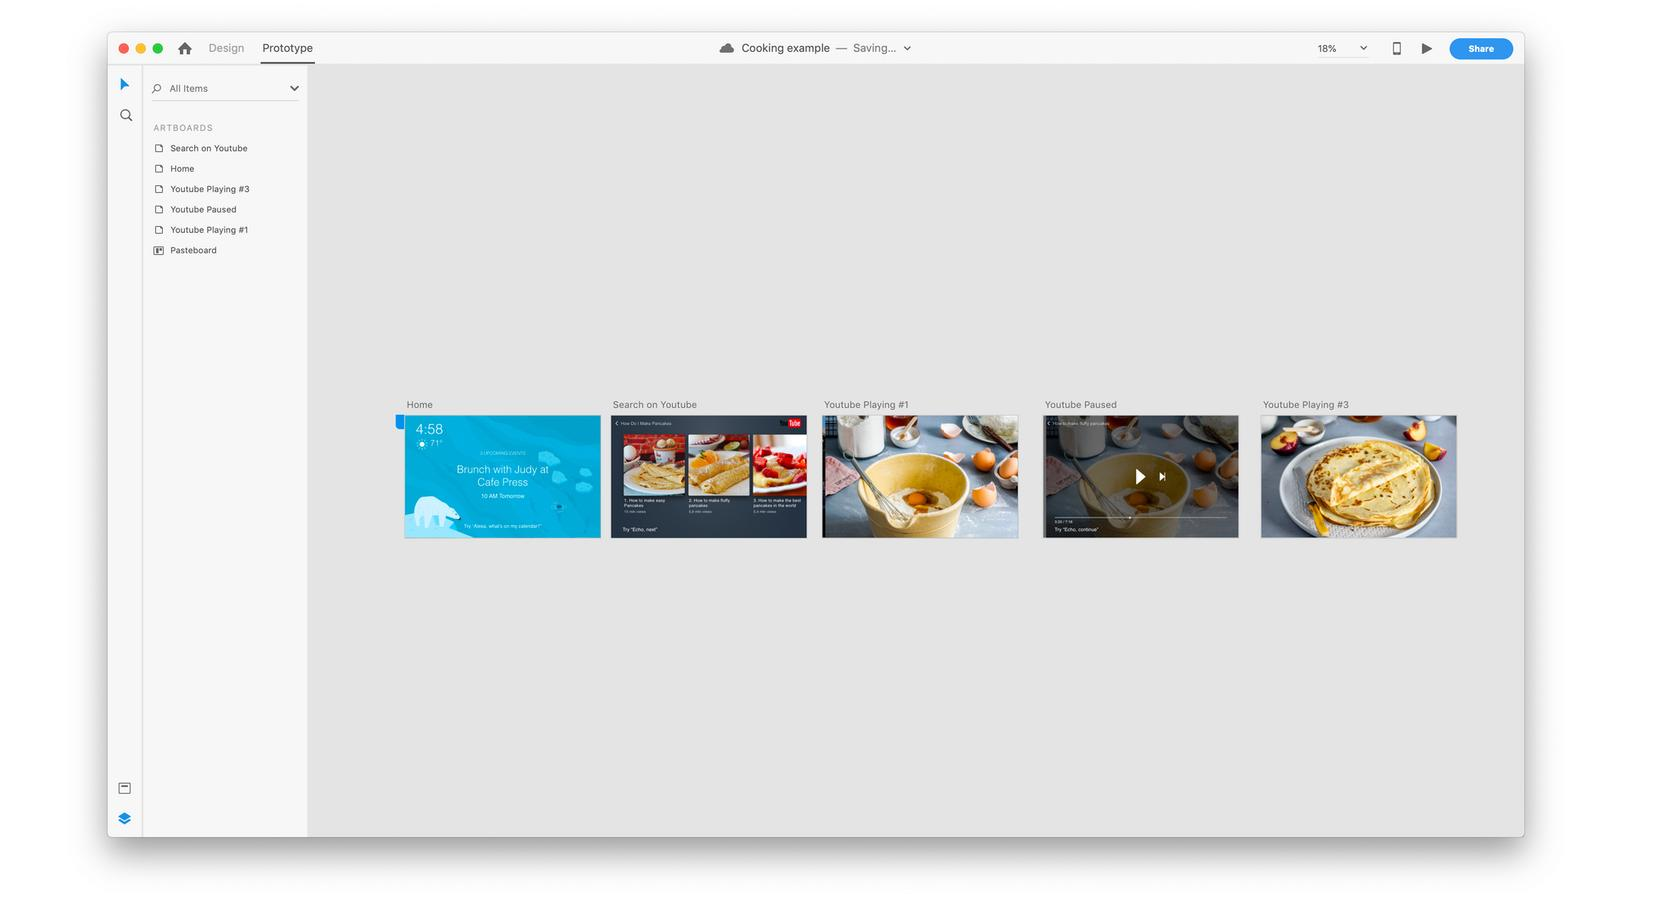 Adobe XD tutorial on how to prototype multimodal design